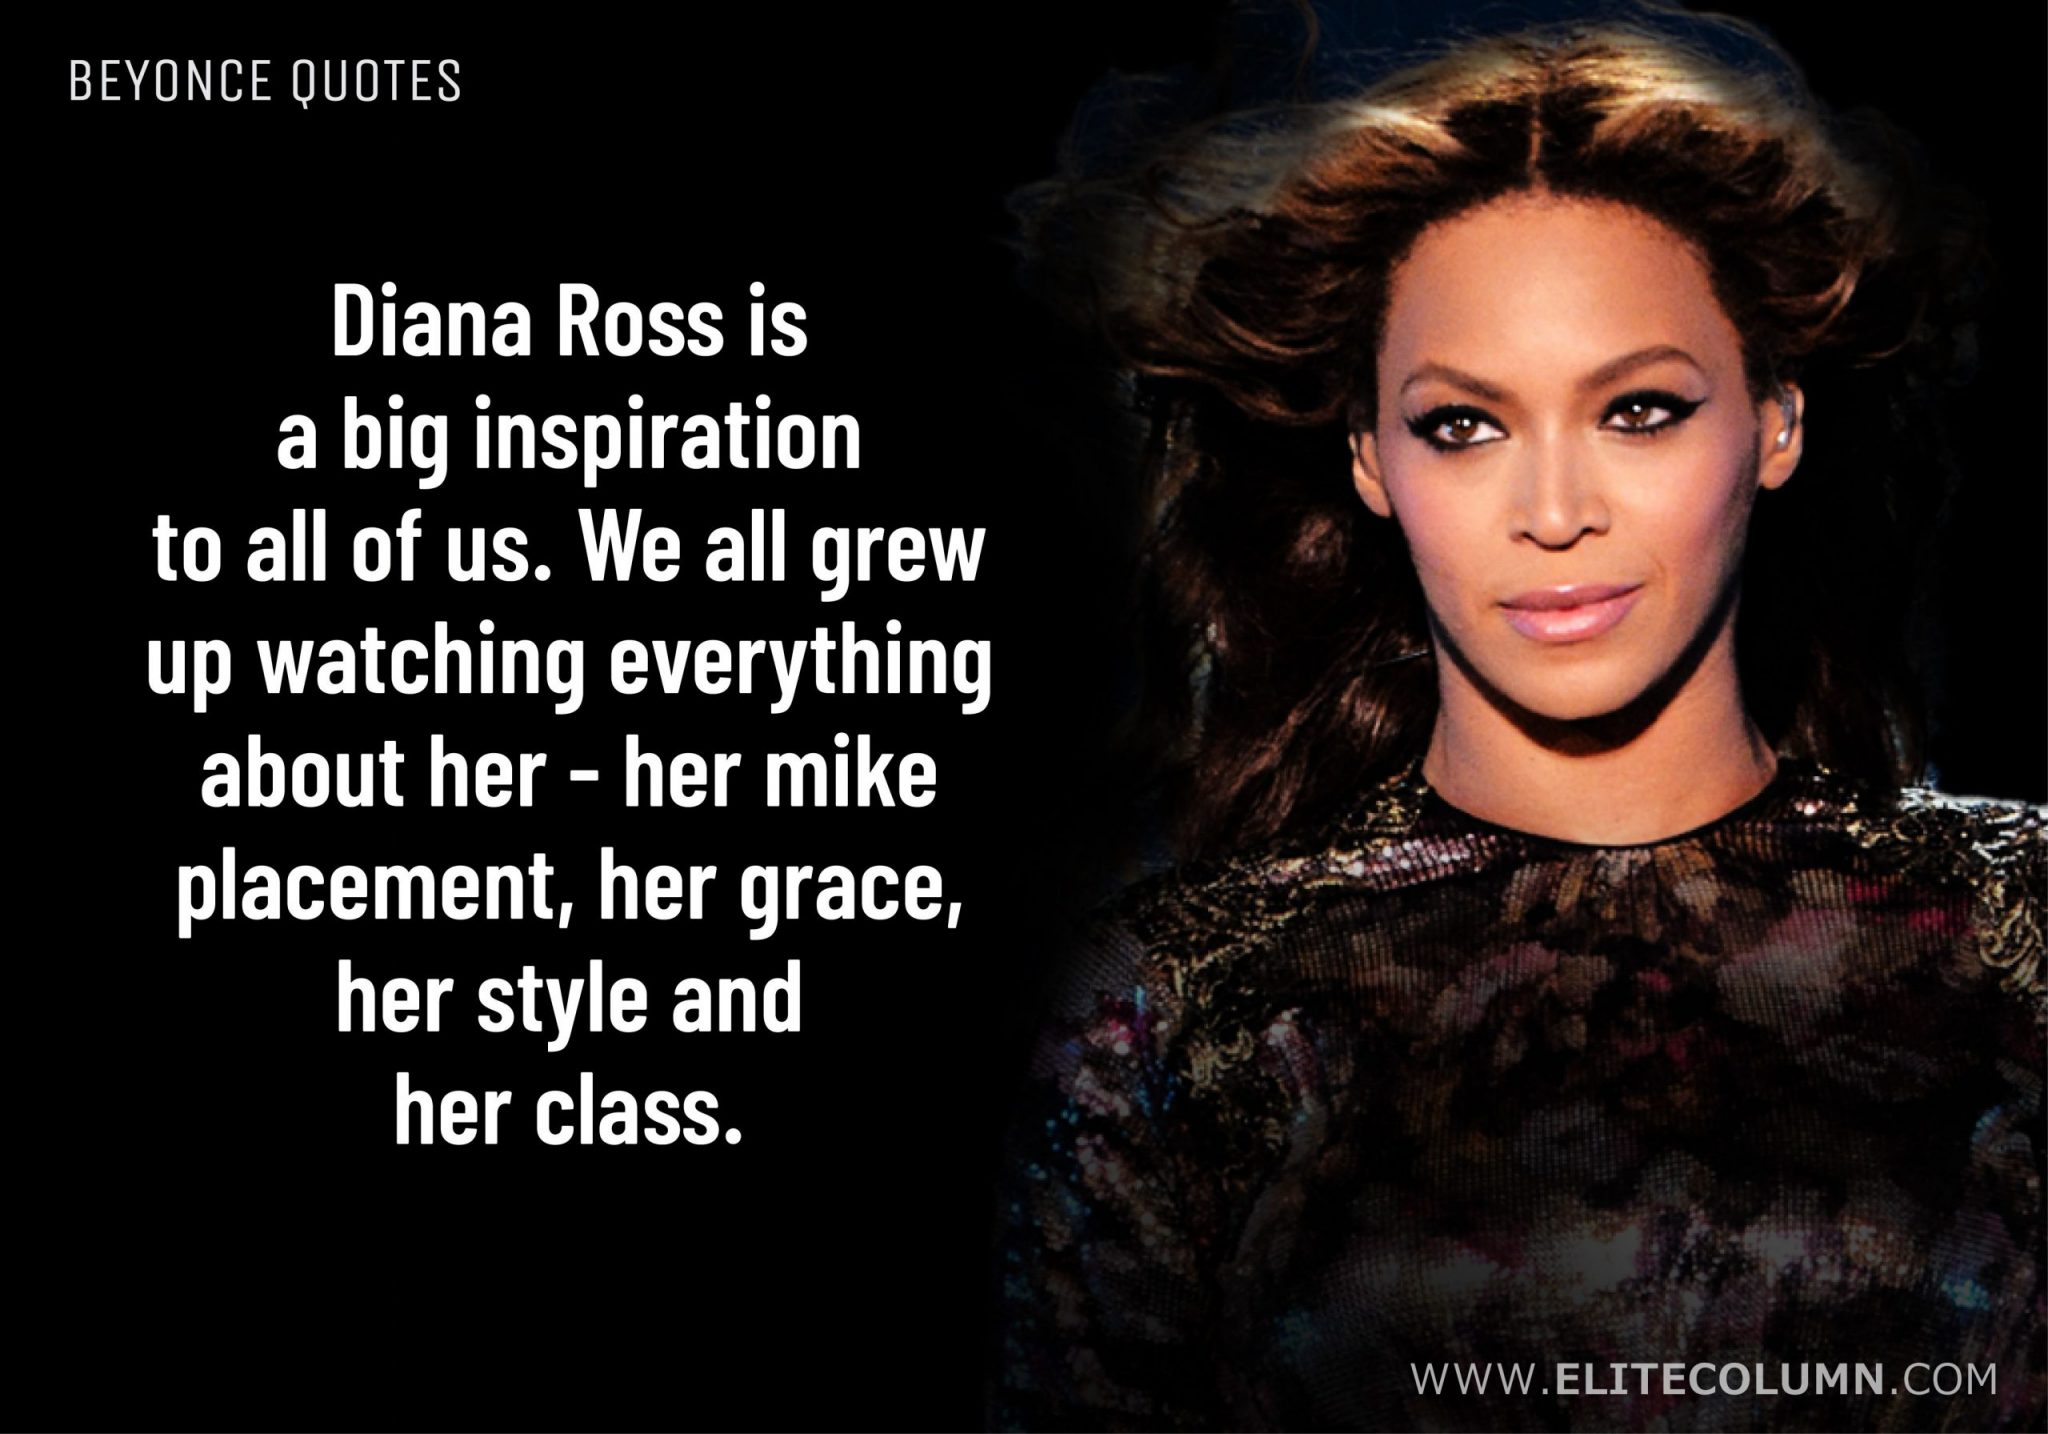 Beyonce Quotes (8)